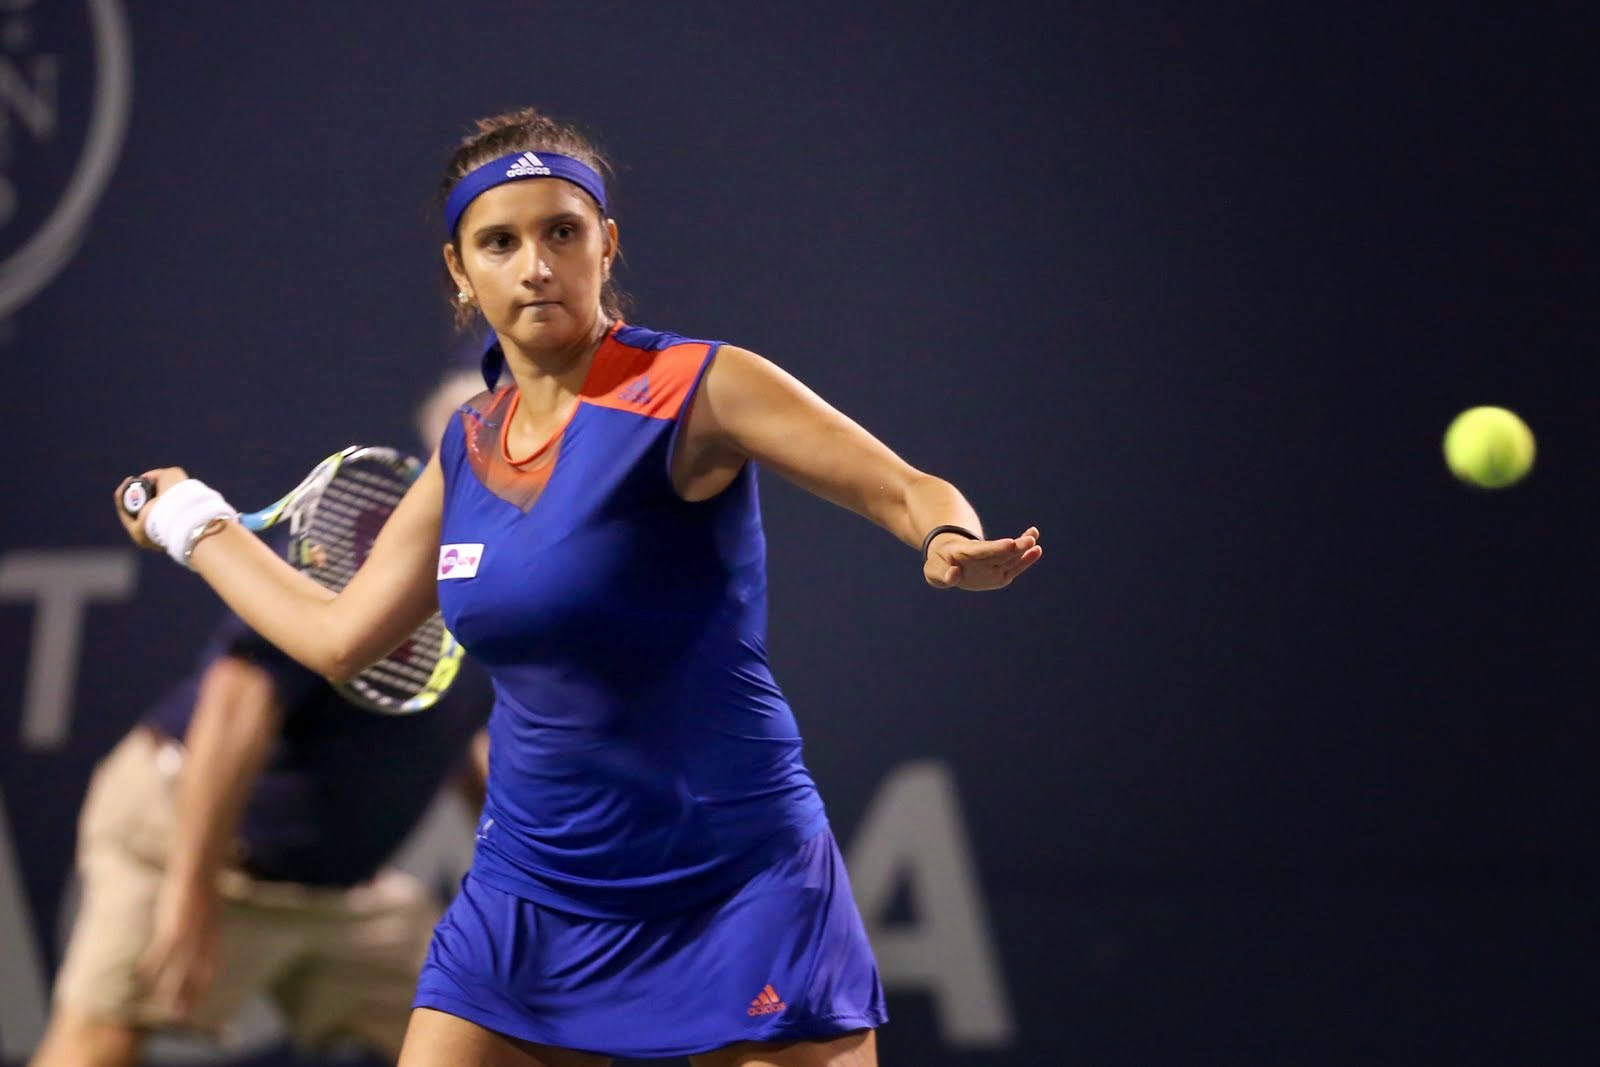 Tennis images Sania Mirza Sexy HD wallpaper and -